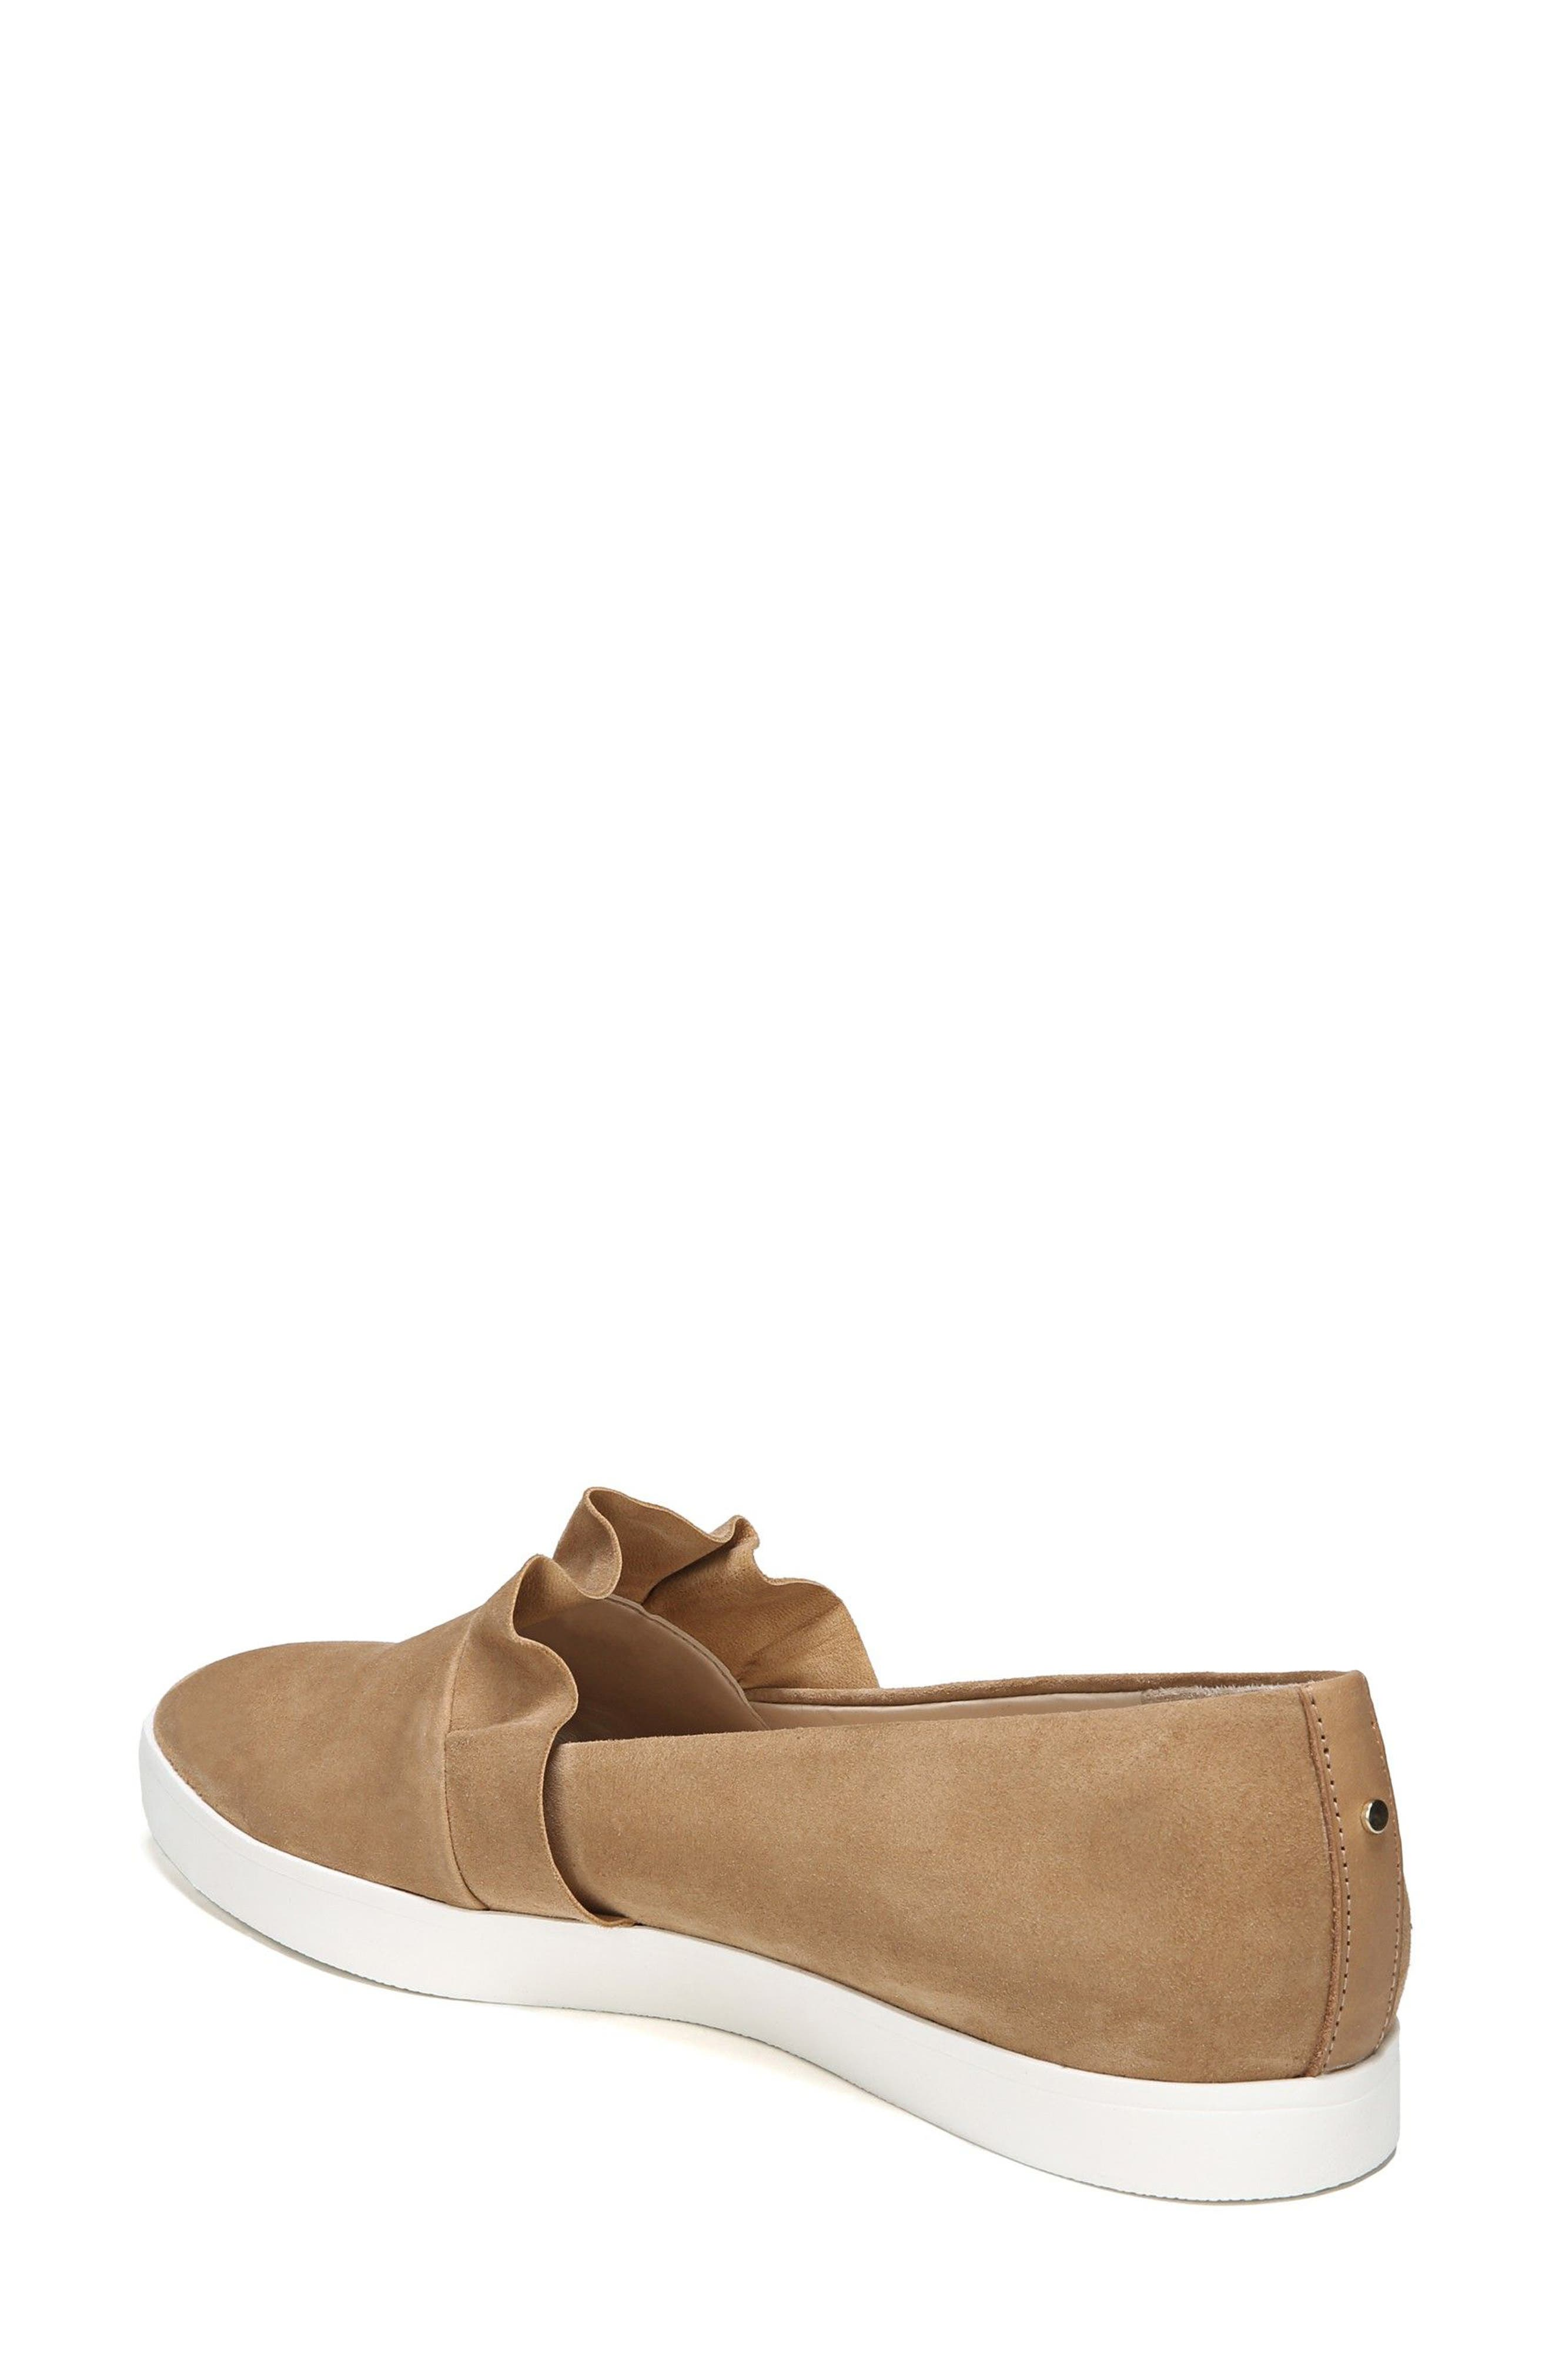 Vienna Slip-On Sneaker,                             Alternate thumbnail 2, color,                             Nude Suede